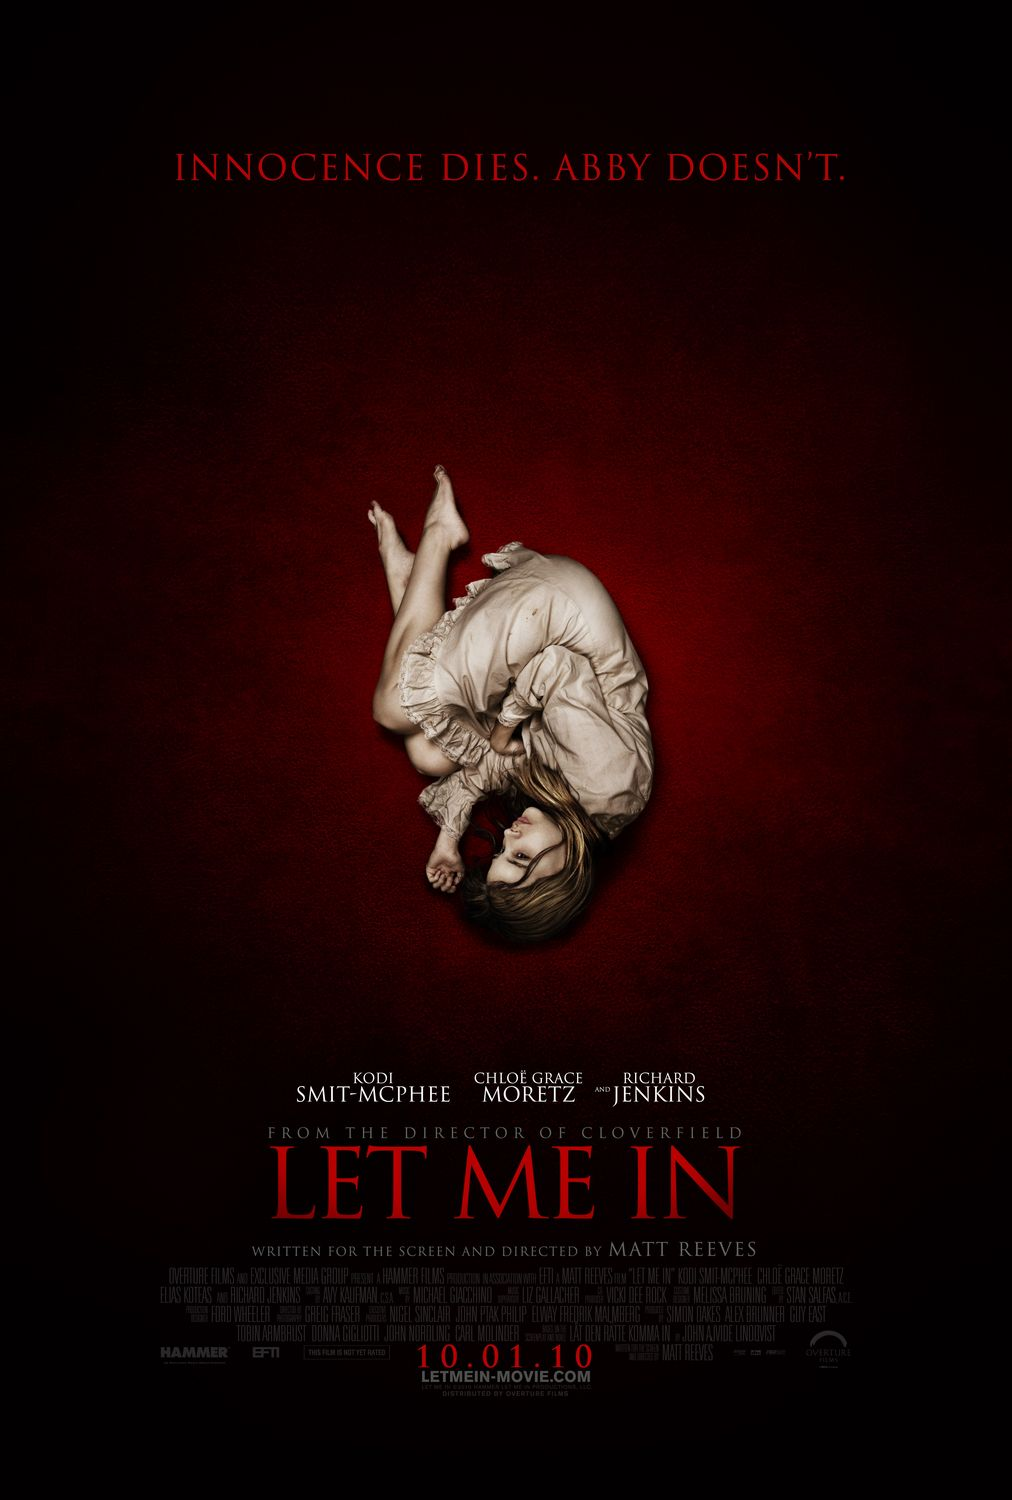 http://mrmoviefiend.files.wordpress.com/2010/09/let-me-in-poster-8.jpg